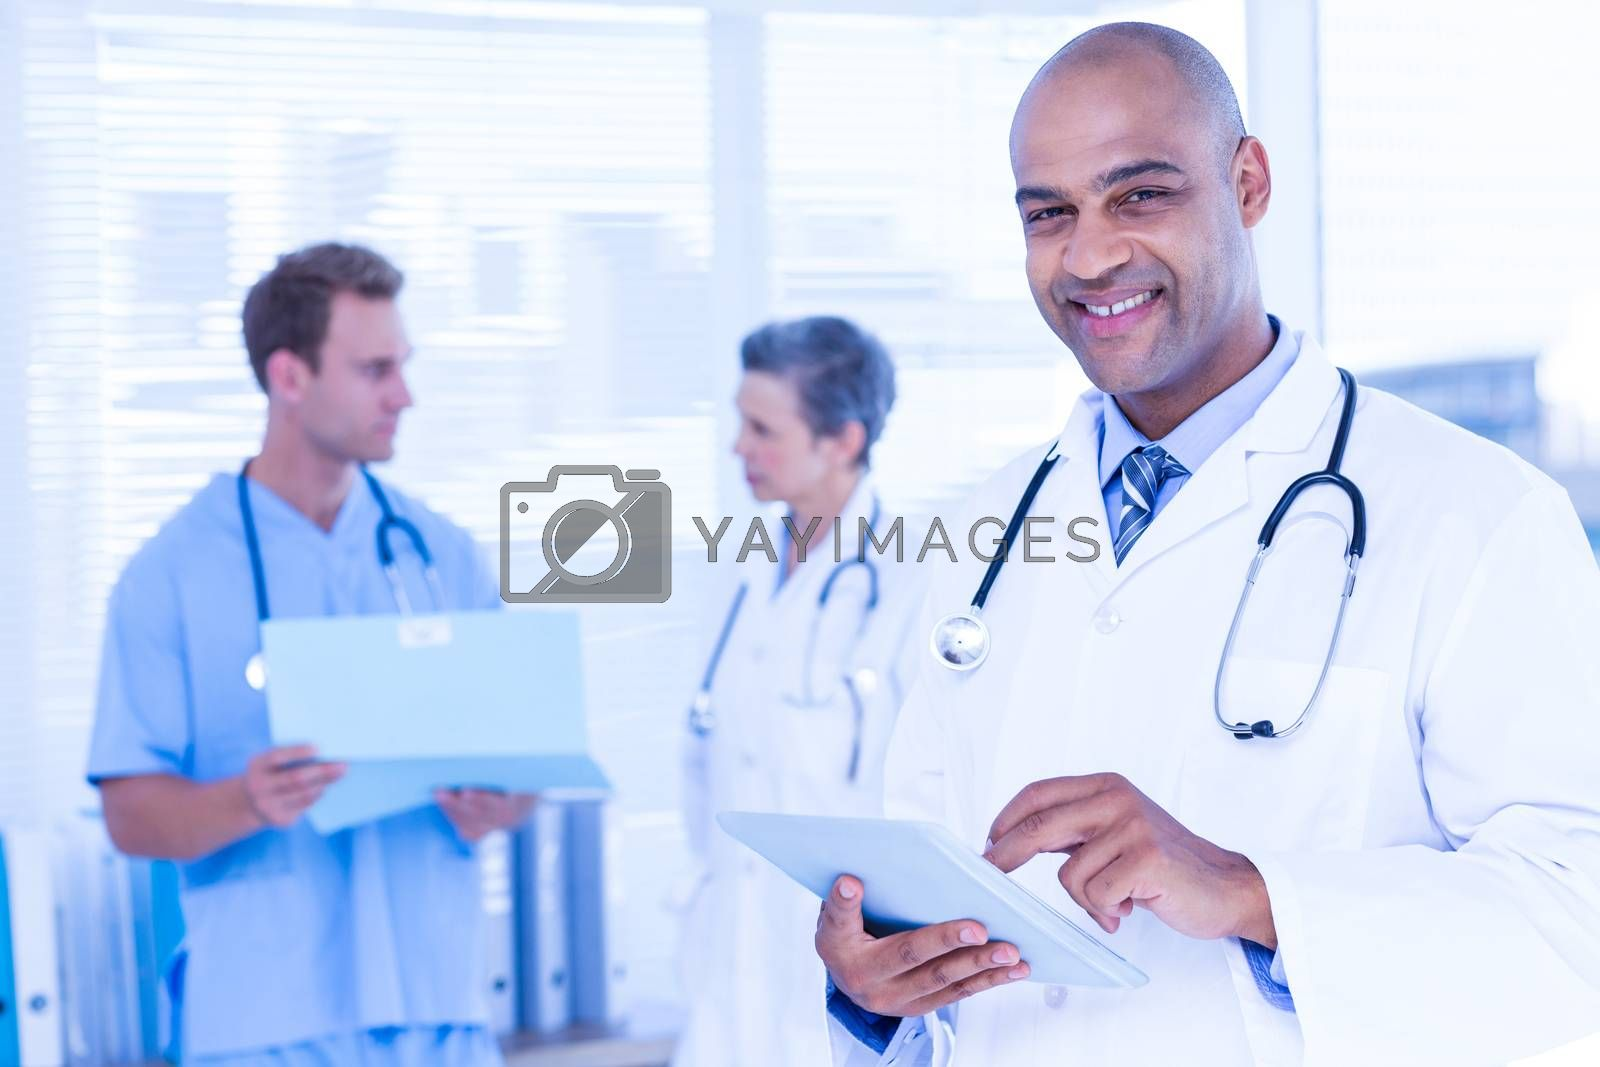 Royalty free image of Smiling doctor using his tablet by Wavebreakmedia